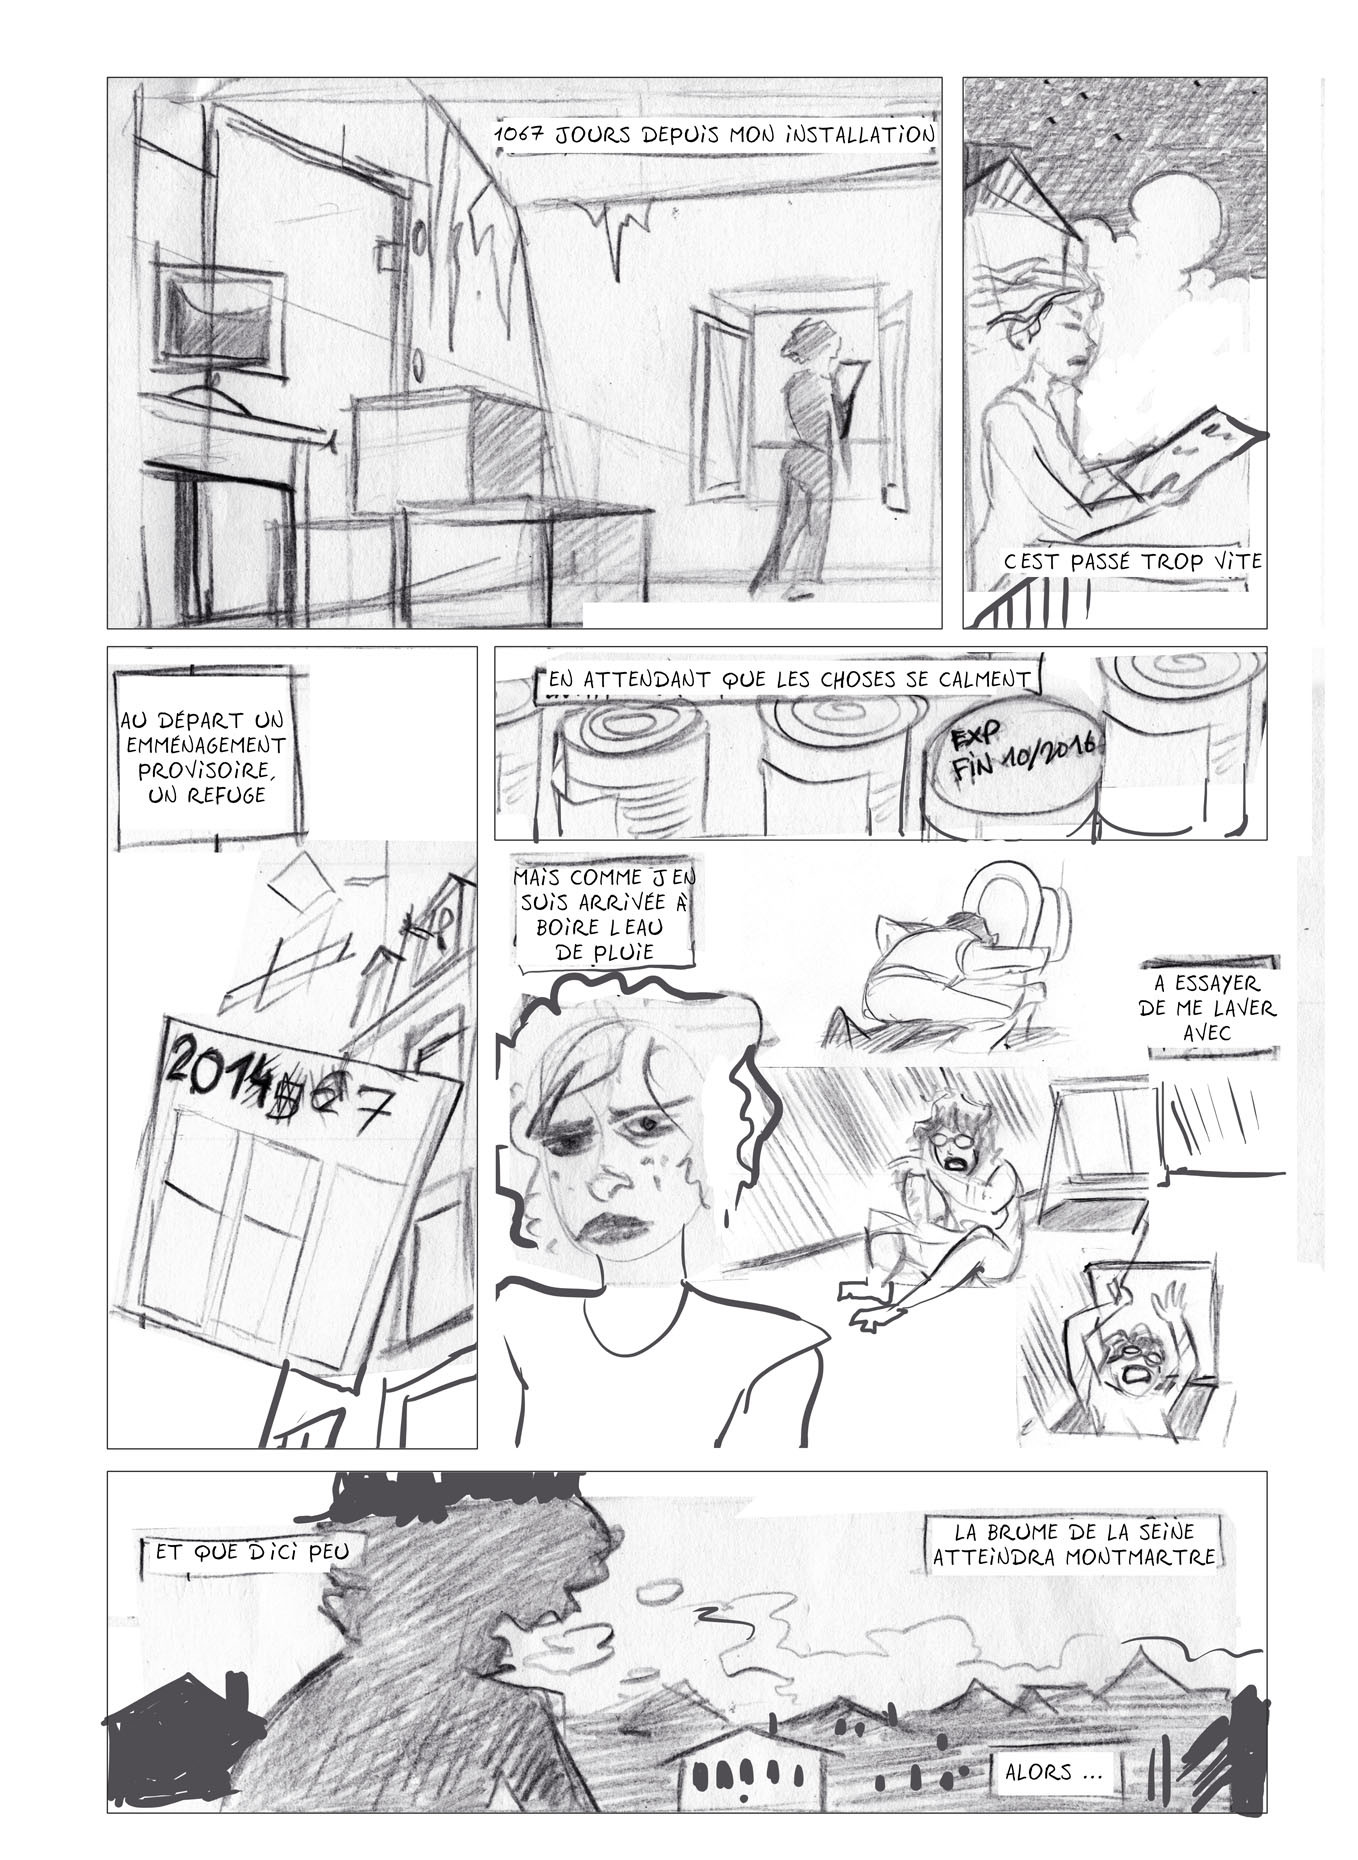 Serge fiedos oceane storyboard page07 by serge fiedos